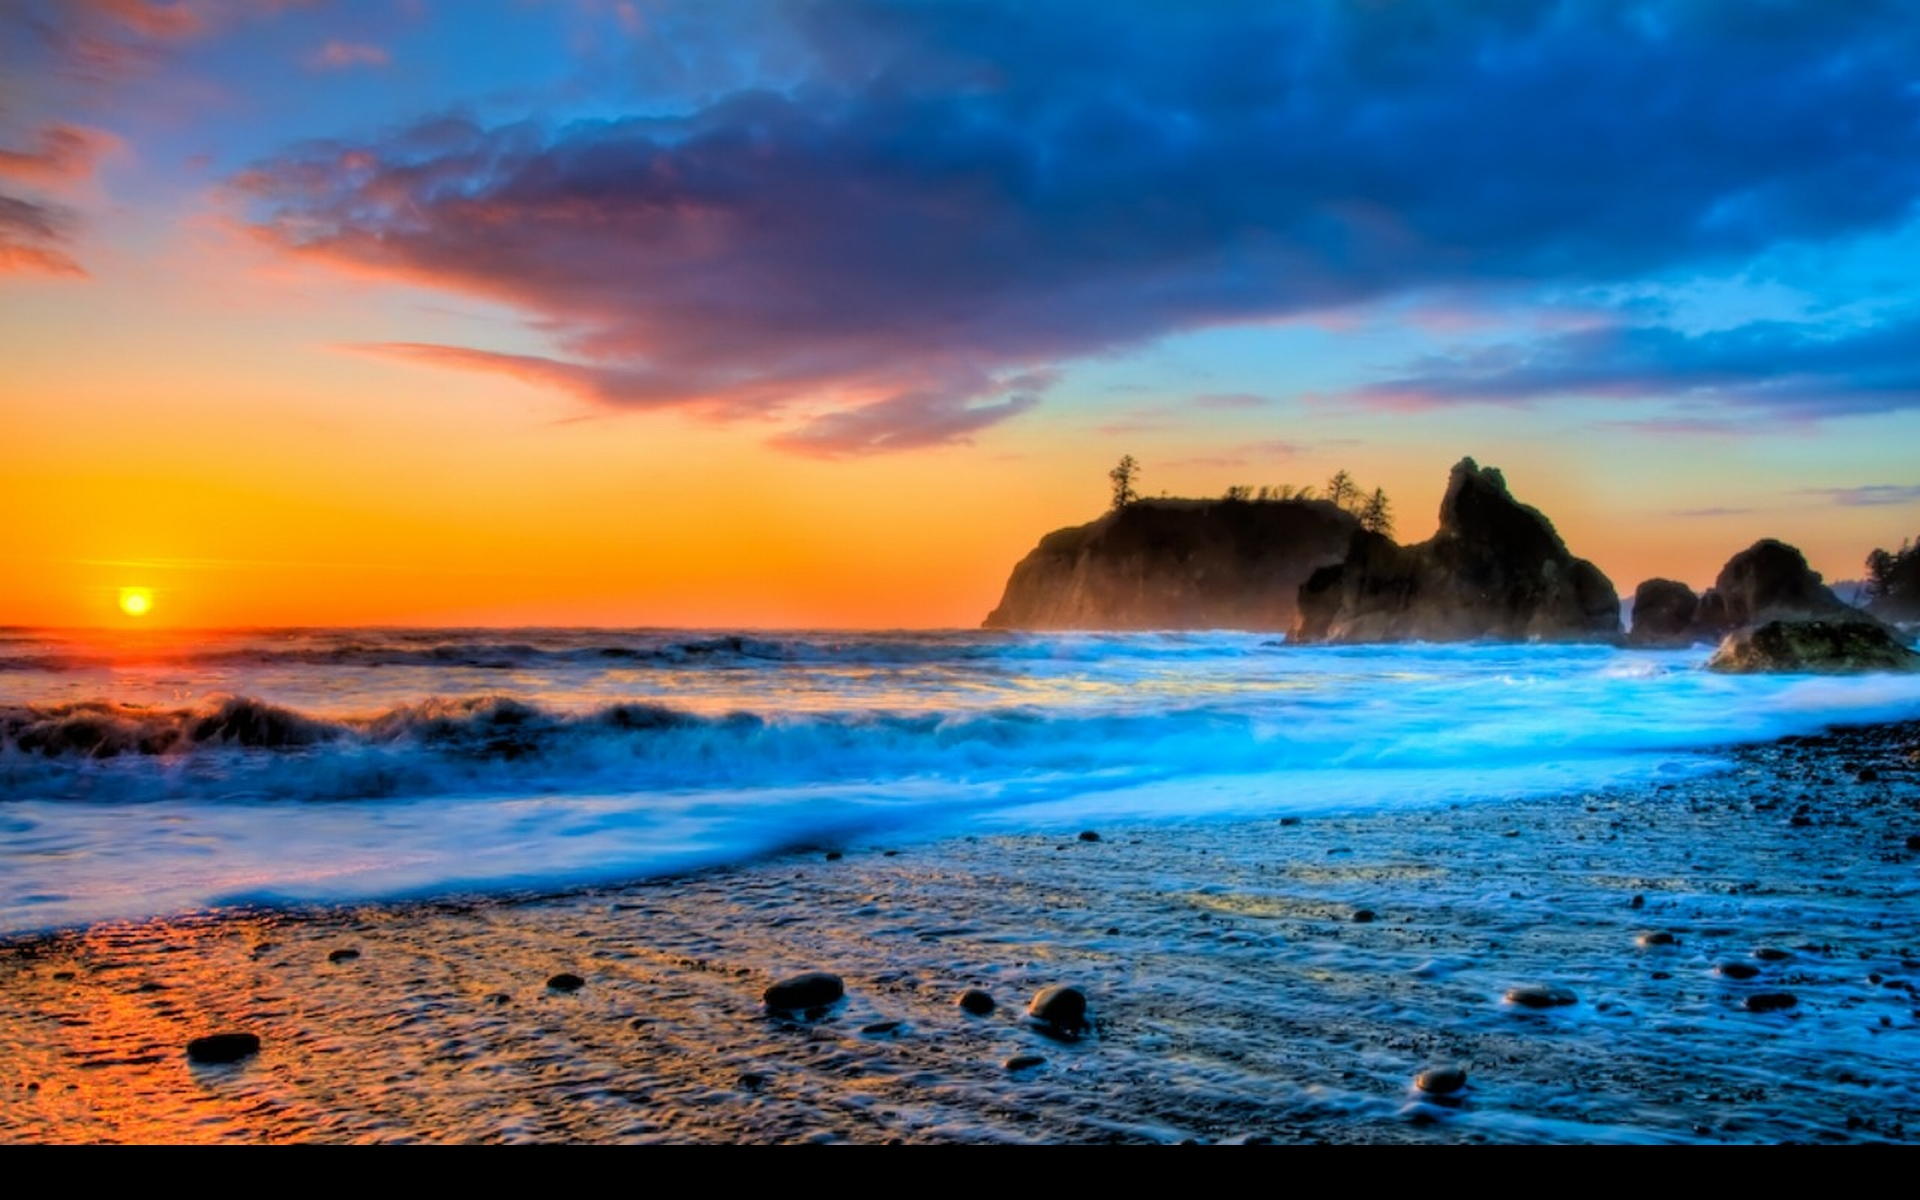 Ruby beach sunset hd wallpaper beach background wallpaper 1920x1200